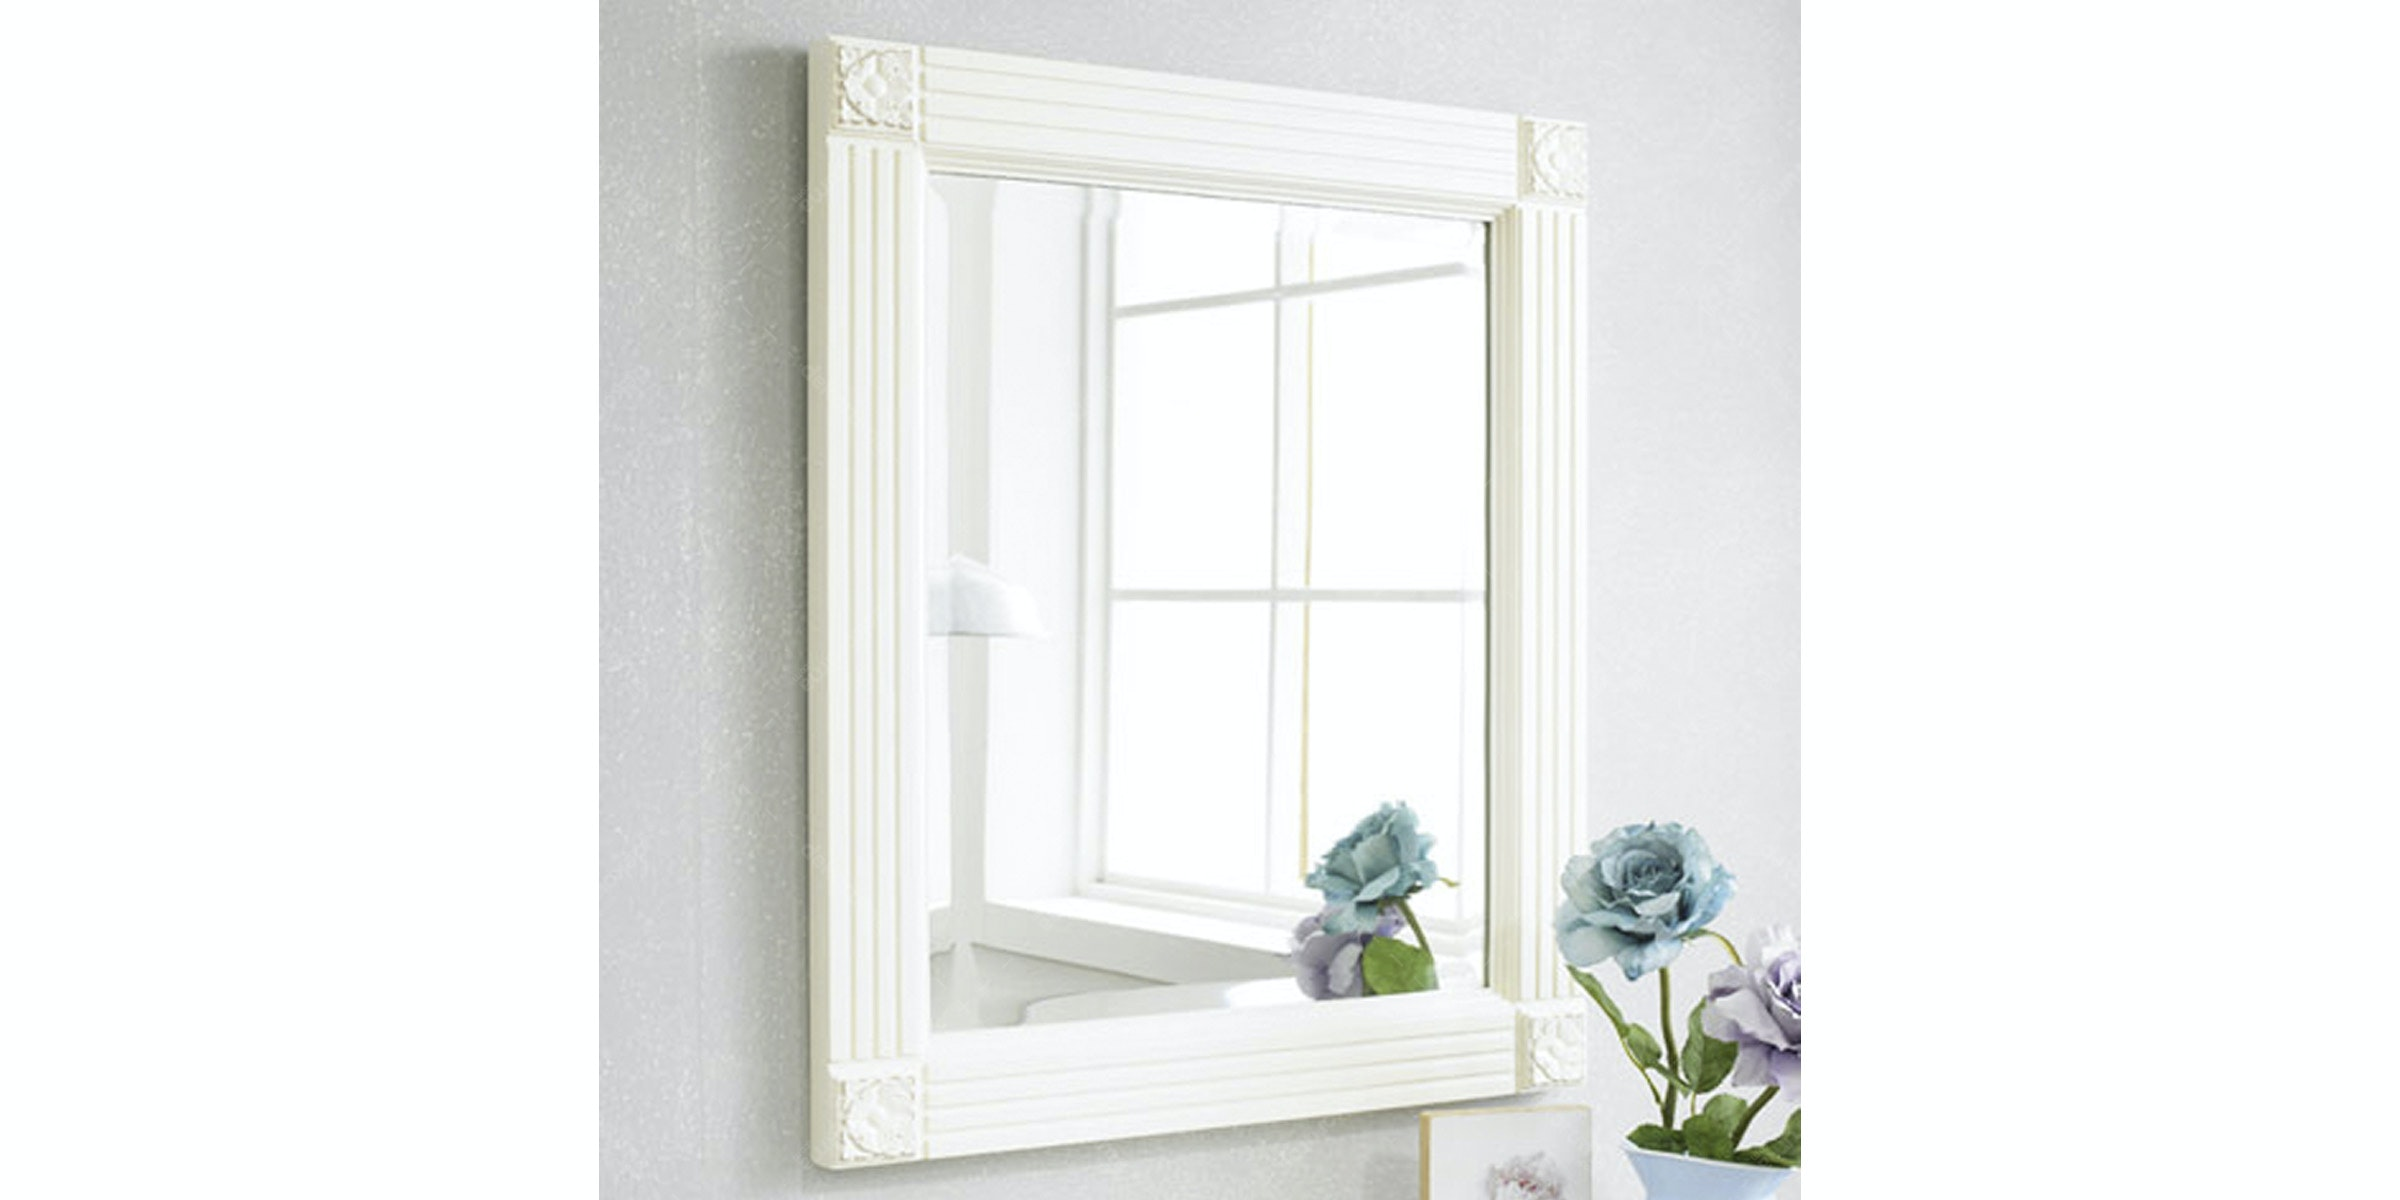 Livien Square Mirror French Series